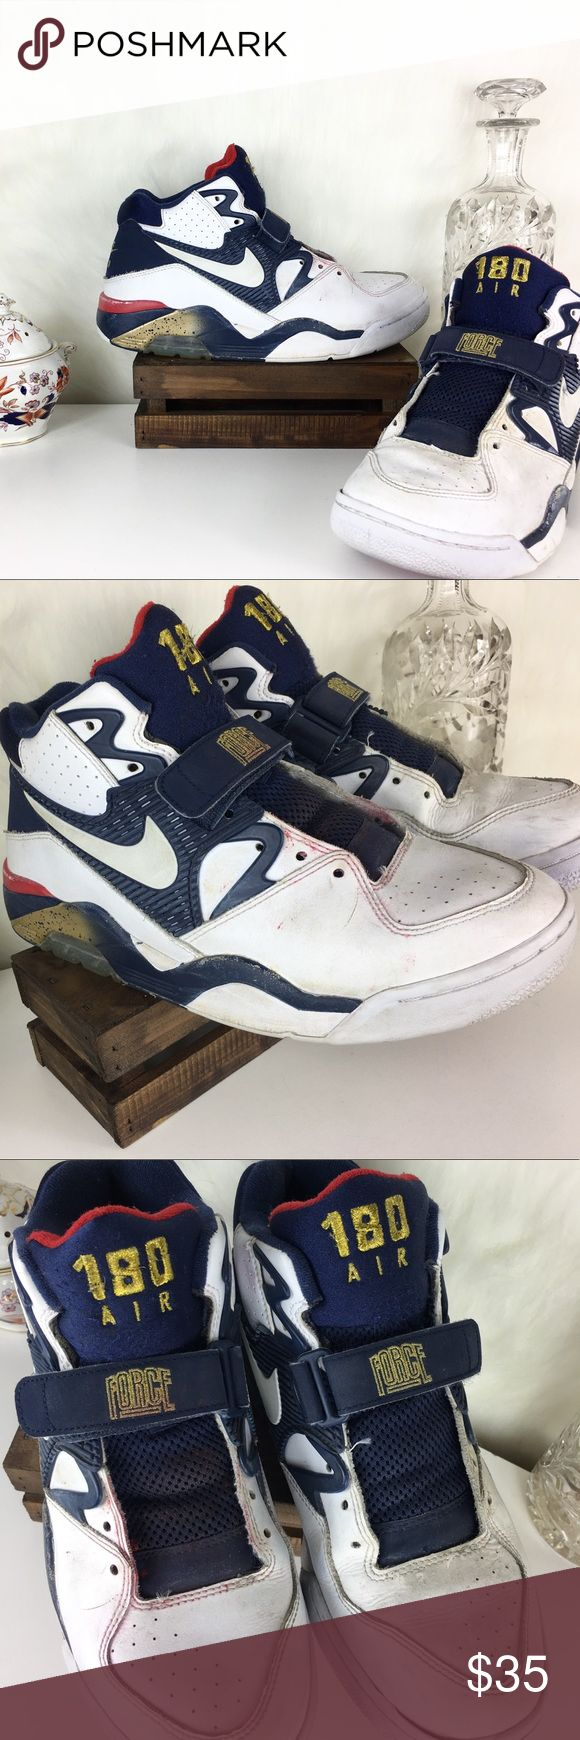 Nike Air Force 180 'Olympic' Team USA Sneaker Shoe Size 8.5US x Men's x See detailed photos for Shoe condition x Nike Shoes Sneakers